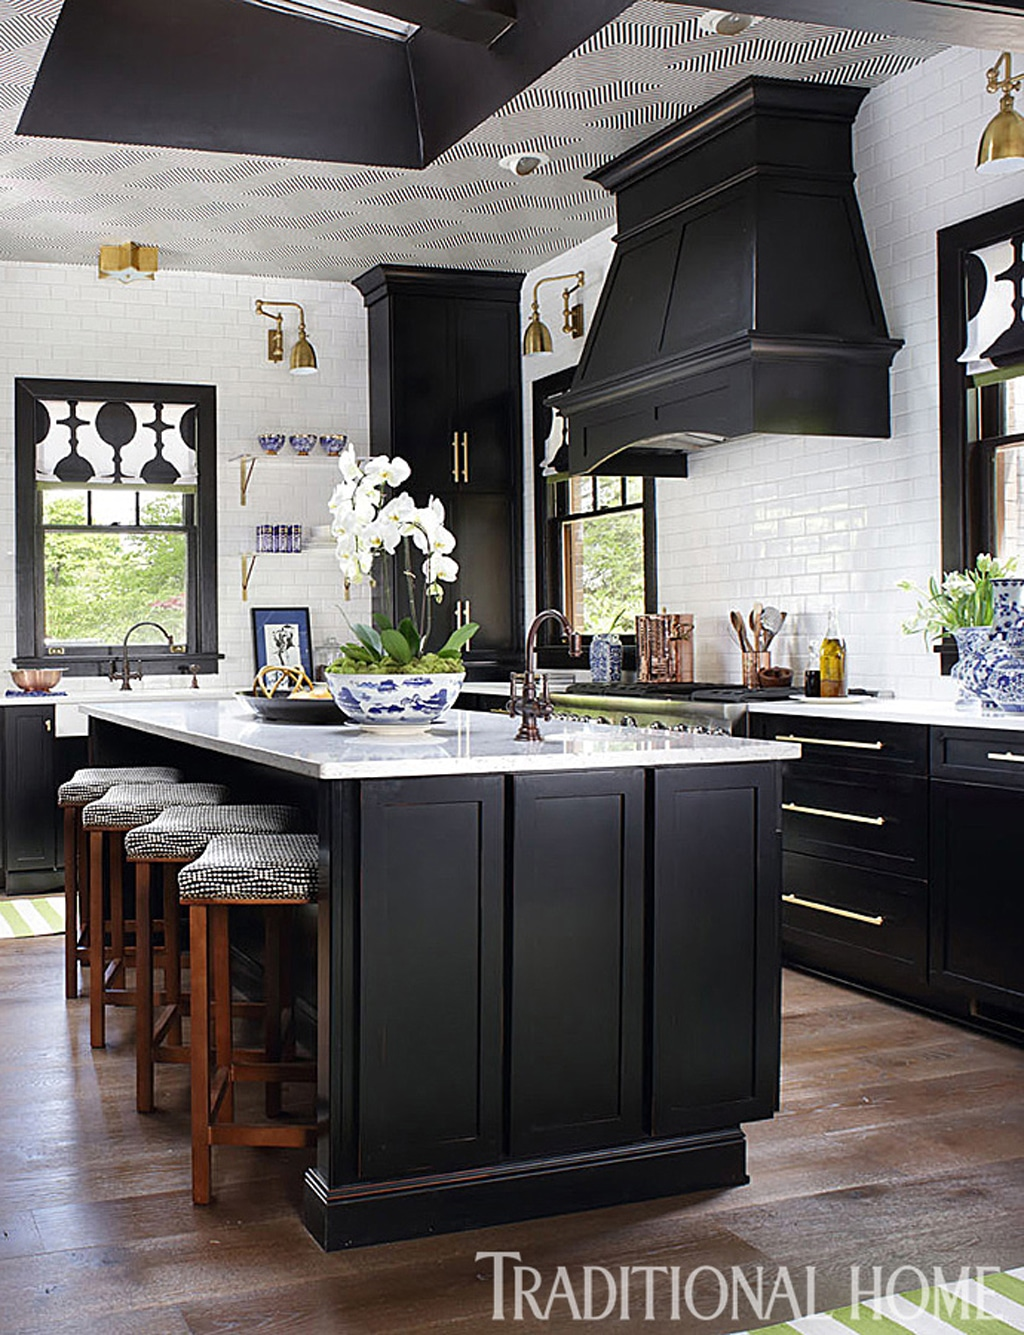 Black kitchen cabinets from Traditional Home